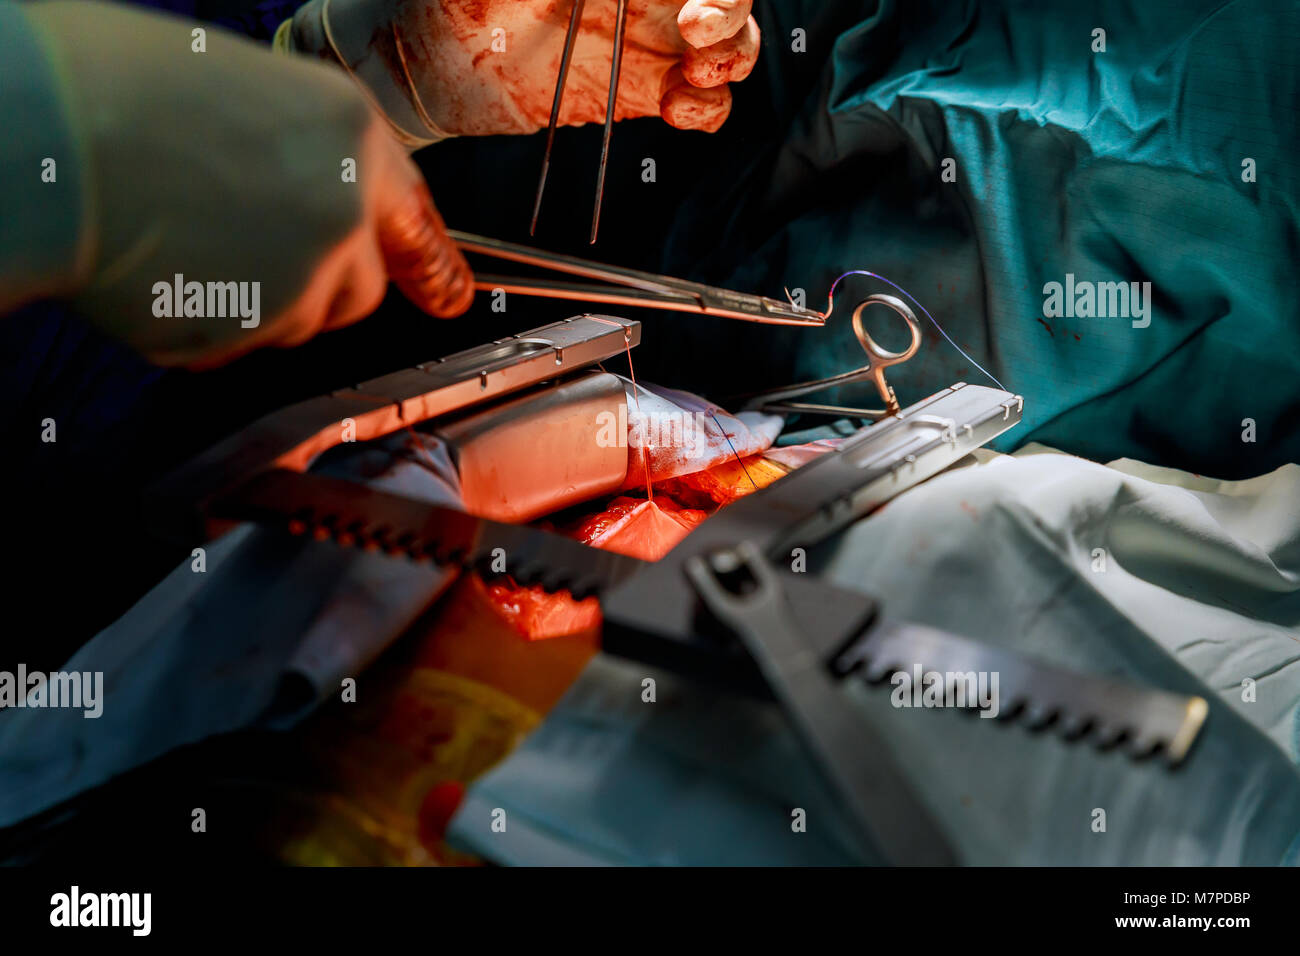 Tricuspid valve replacement with bioprosthetic valve surgical instruments for open heart surgery - Stock Image